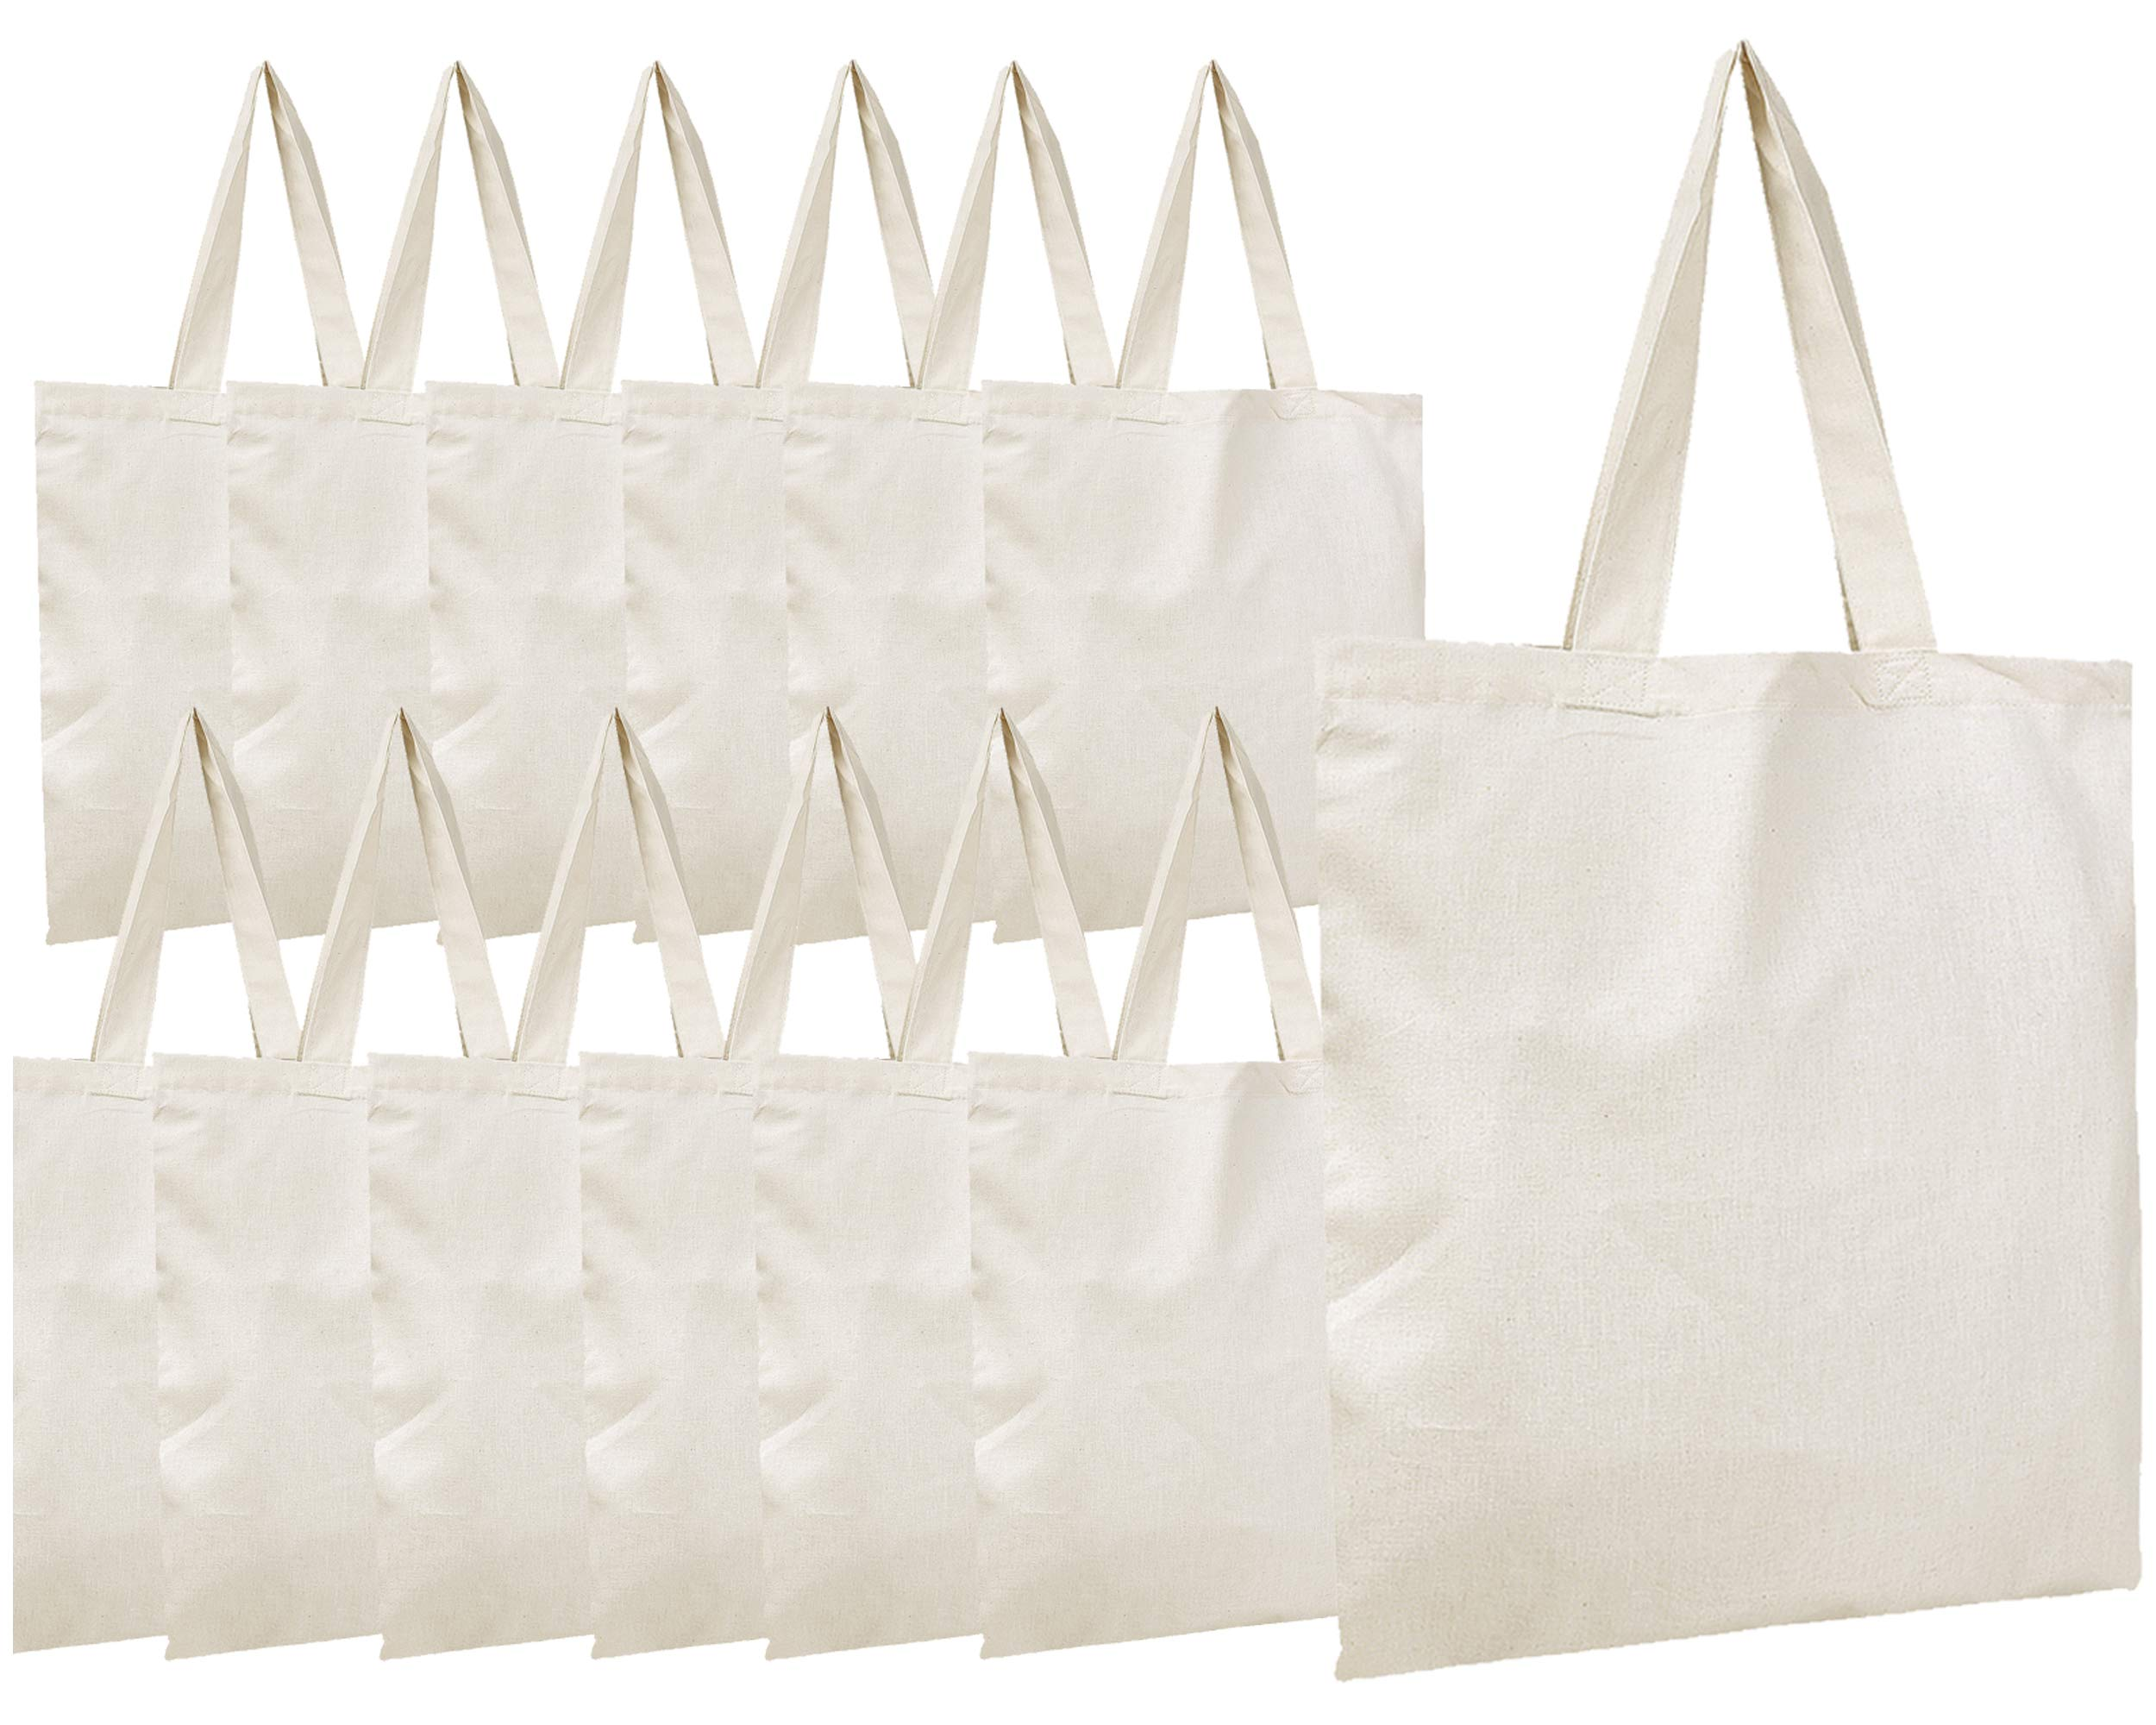 20d075adf2f6 Details about BagzDepot Canvas Tote Bags Wholesale - 12 Pack - Plain Cotton  Tote Bags in Bulk,